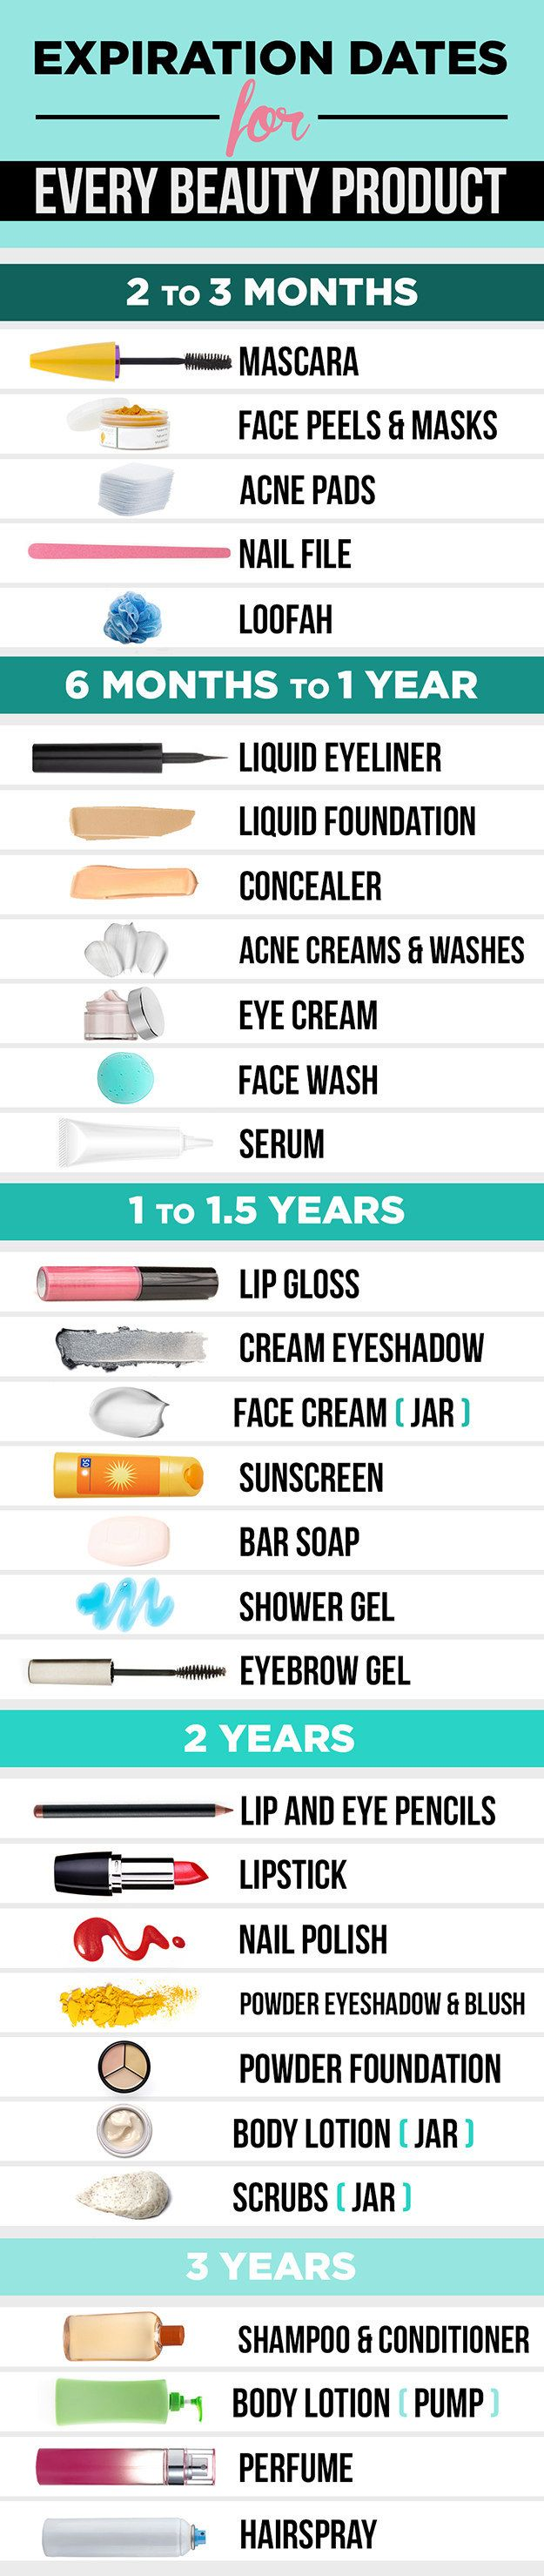 This is exactly how long you should be keeping every beauty product you own. - Makeup and skin care expiration dates